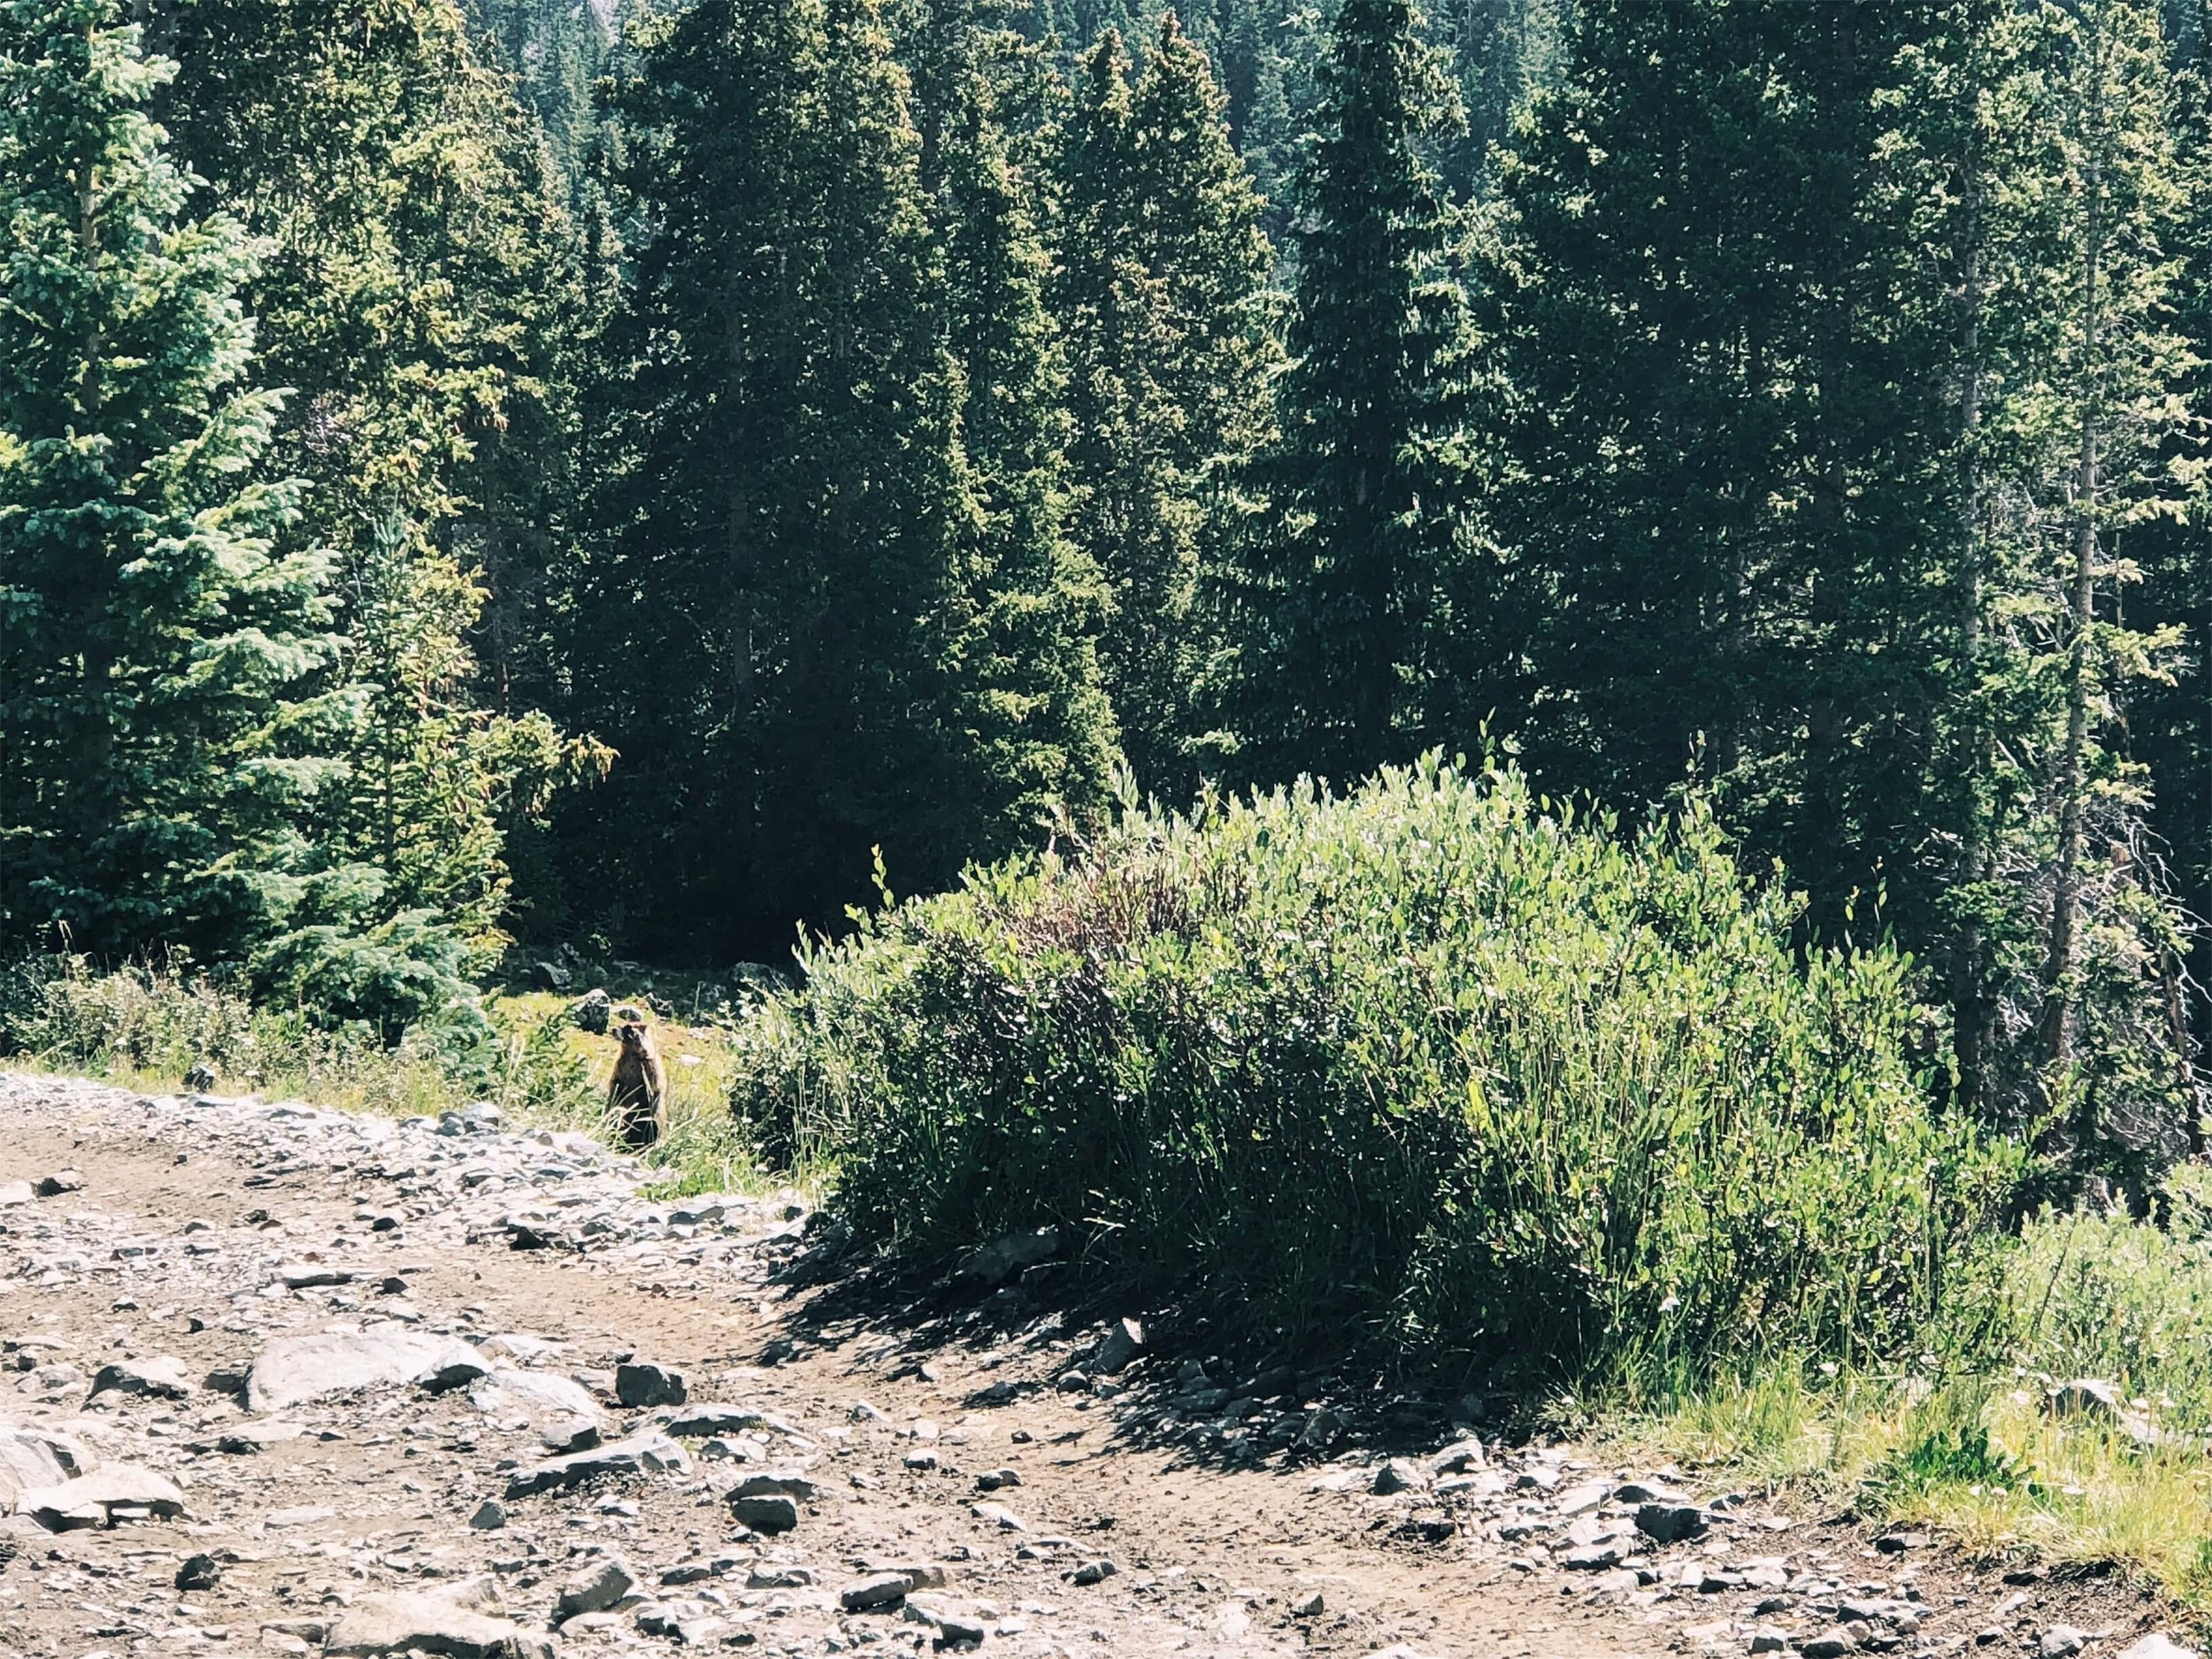 My most exciting wildlife spotting of the day: MARMOT!